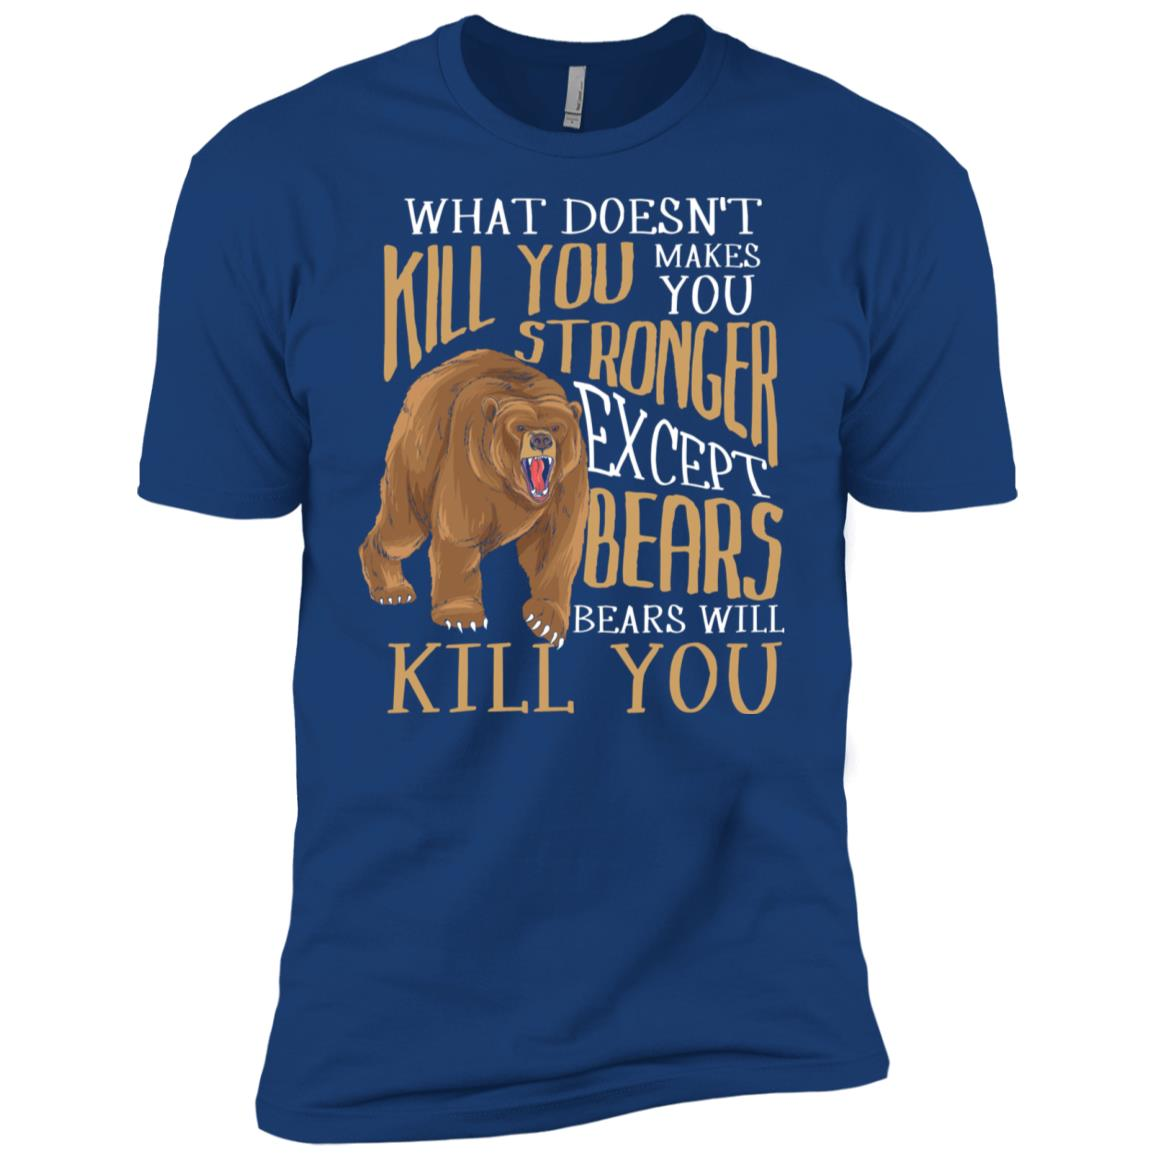 Doesn't Kill You Makes You Stronger Except Bears Ls Men Short Sleeve T-Shirt